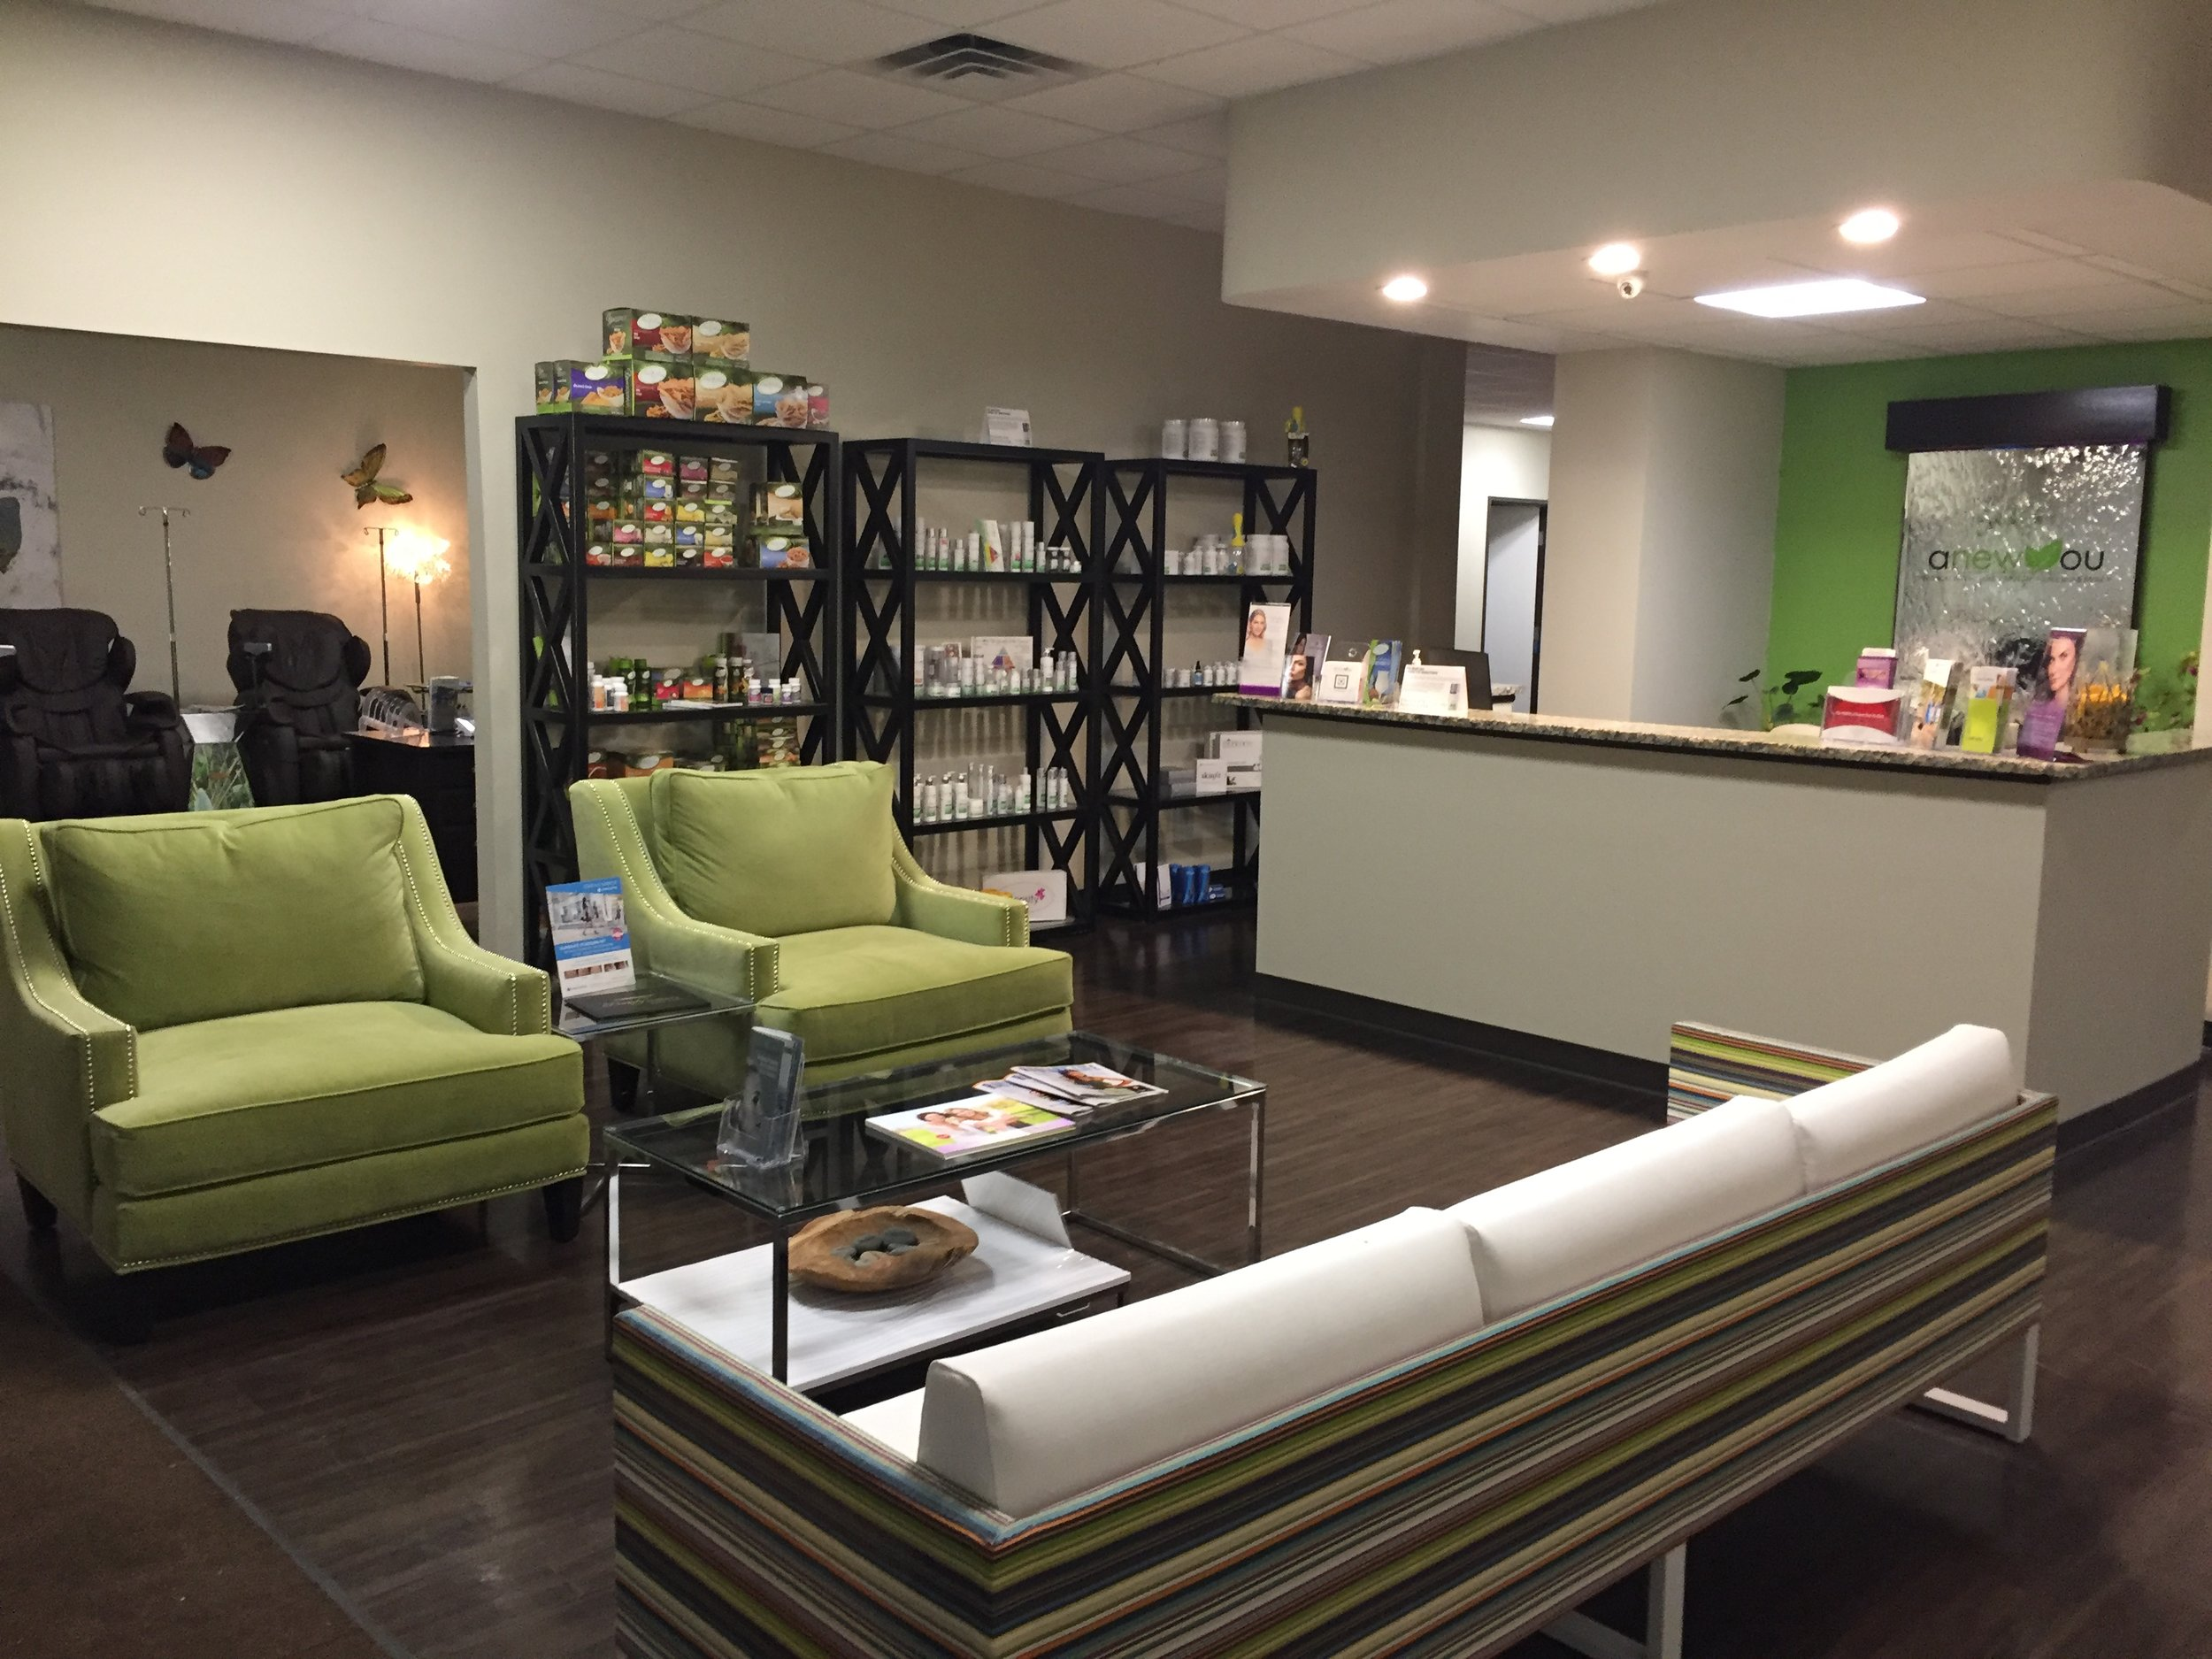 Here at Anew You in San Antonio we offer IV therapy in a luxurious spa atmosphere.